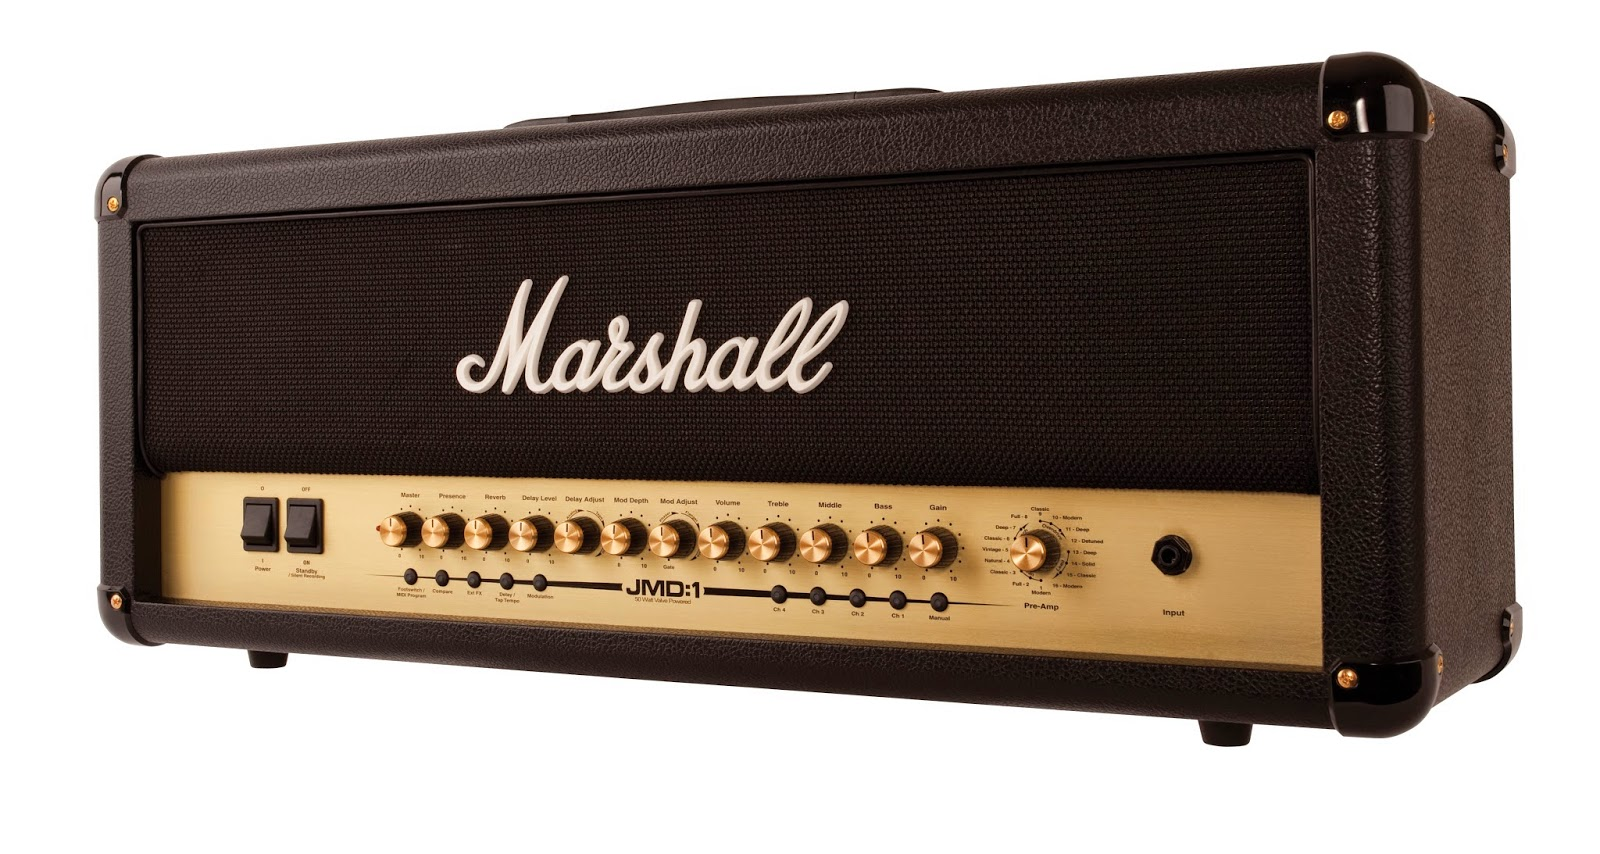 Top Notch Guitar Circuit Difference Between Thejtm45 Head And The Bluesbreaker Combo All Marshall Sounds Though No Other Brands For This Reason It Is Truly A Amplifier With Digital Preamp Valve Power Amp